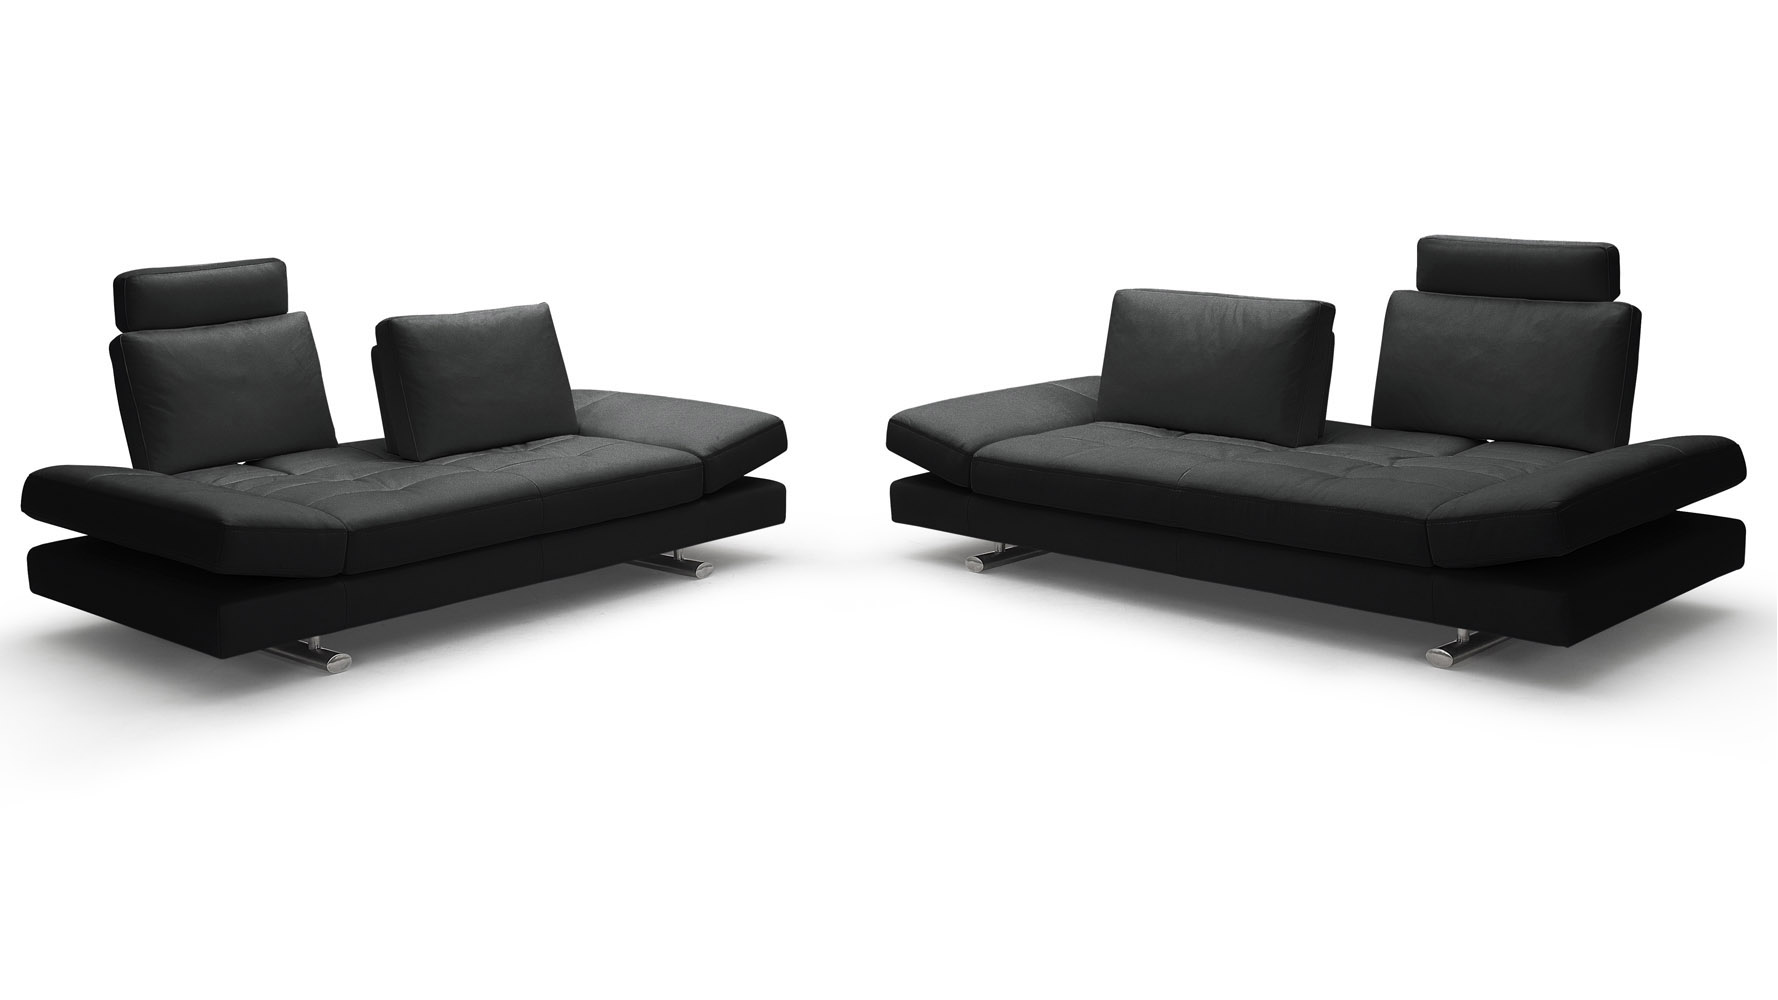 black modern sofa set havertys reclining sofas bentley top grain leather with loveseat zuri mouse over image to zoom or click view larger